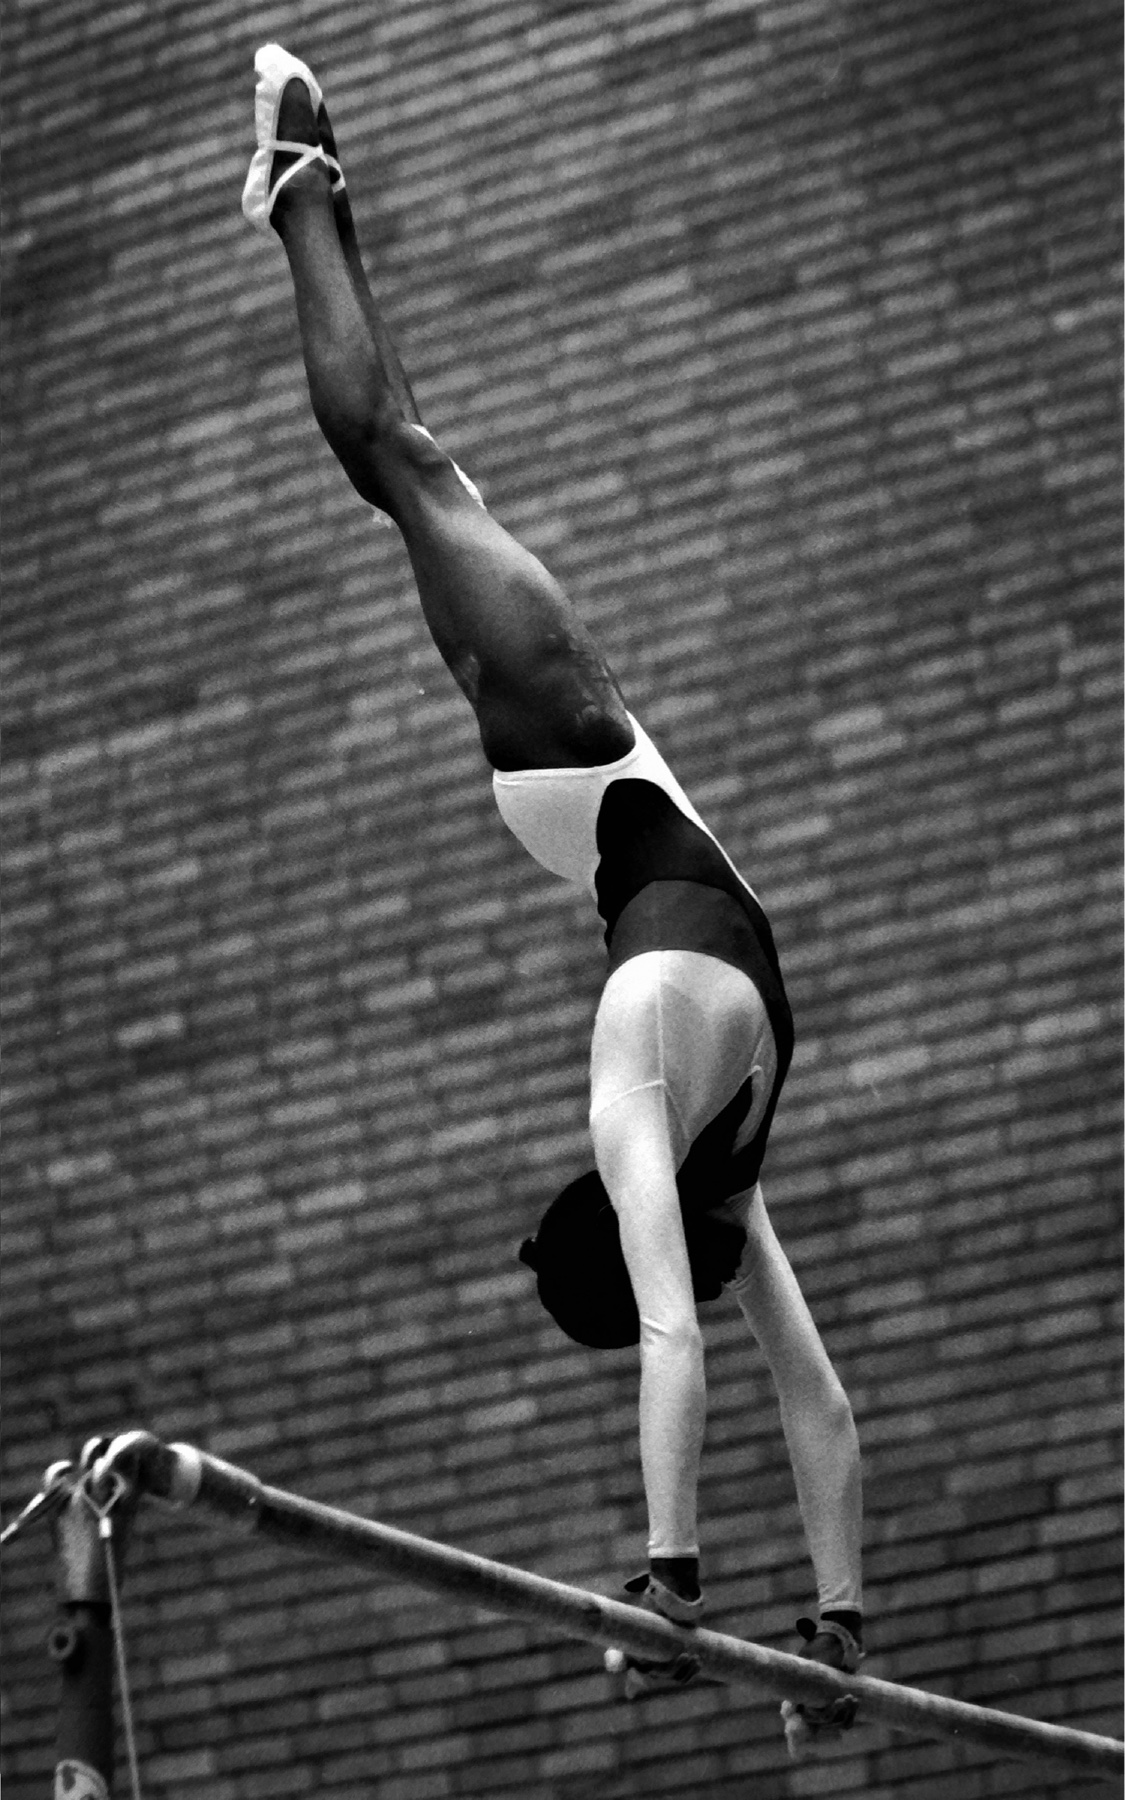 Kathy Williams competing on A Bars for GB against Romania in November, 1979 - photo Alan Burrows